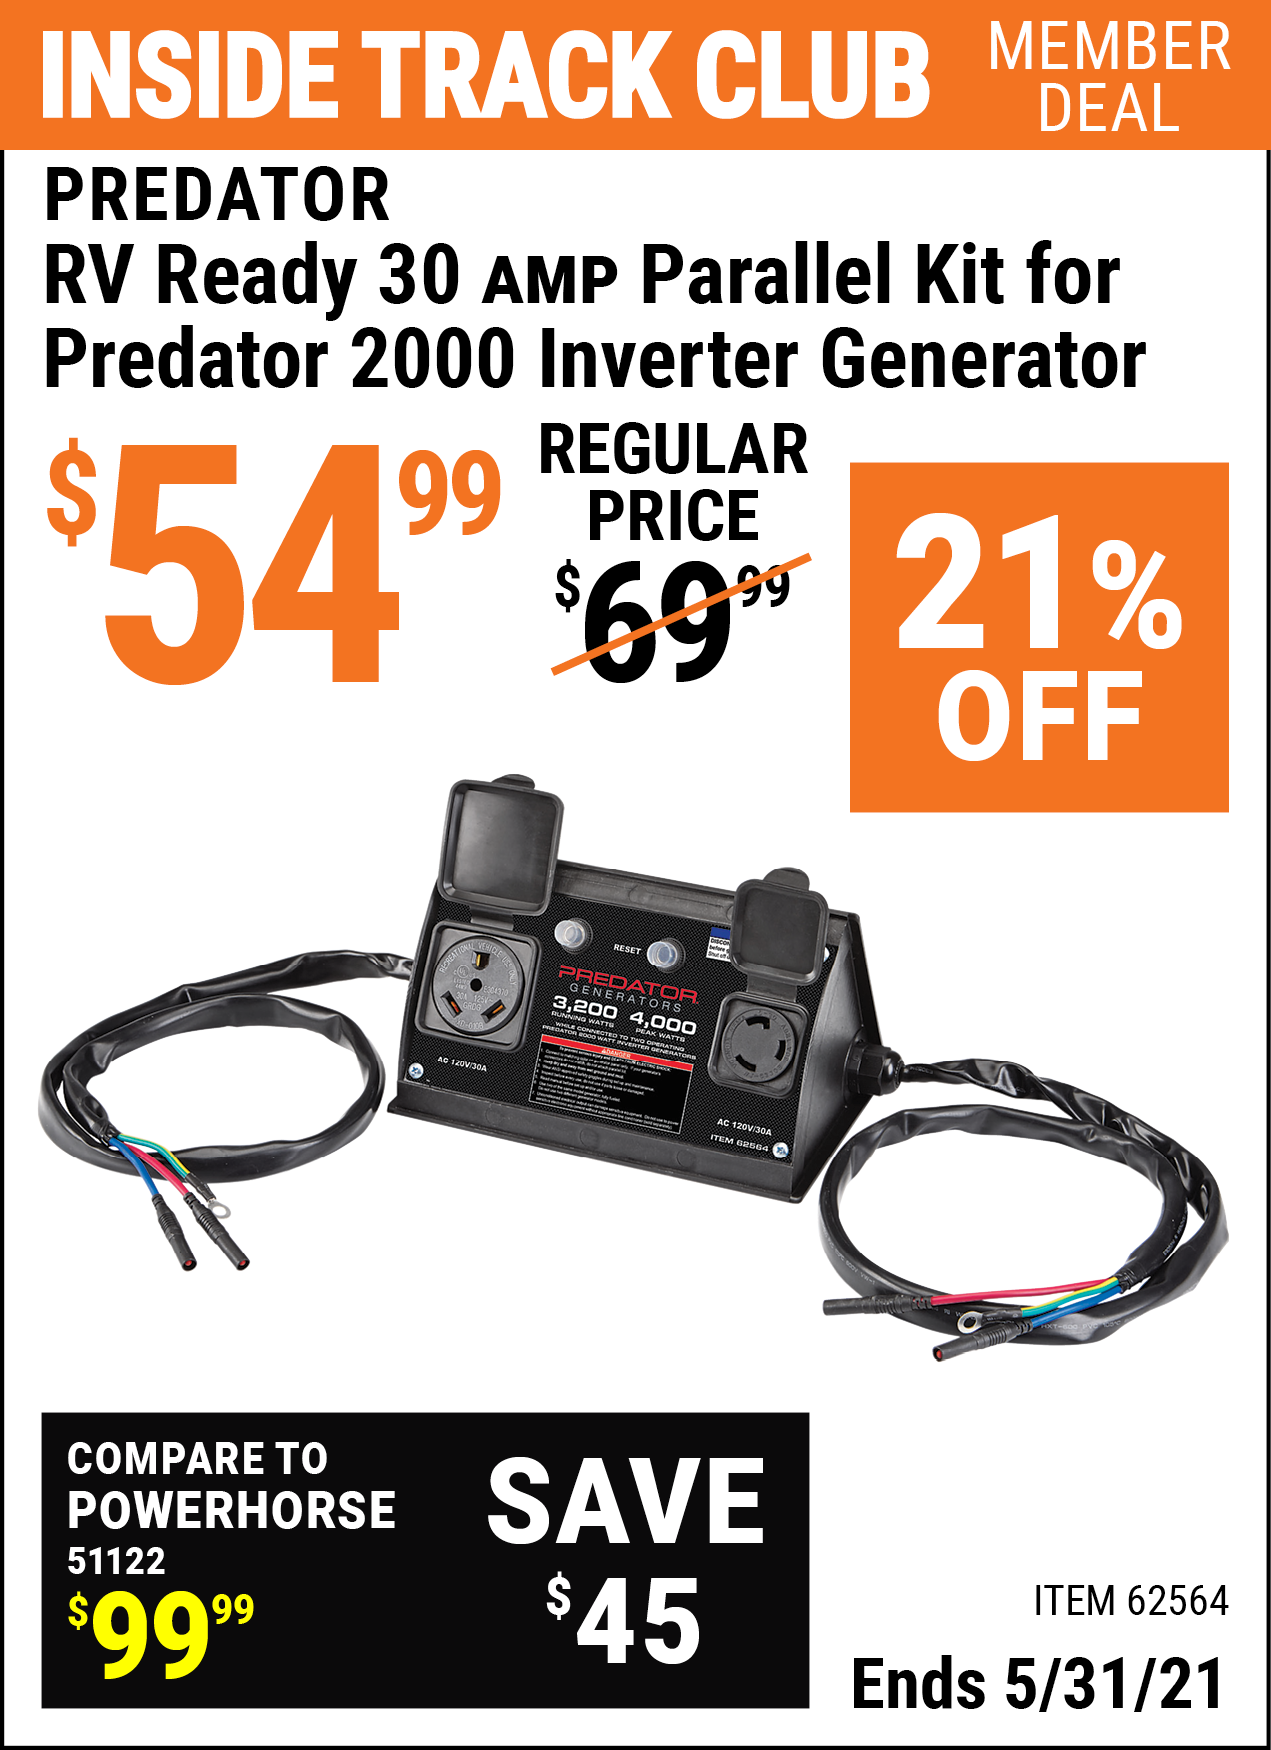 Inside Track Club members can buy the PREDATOR RV Ready 30A Parallel Kit for Predator 2000 Inverter Generator (Item 62564) for $54.99, valid through 5/31/2021.